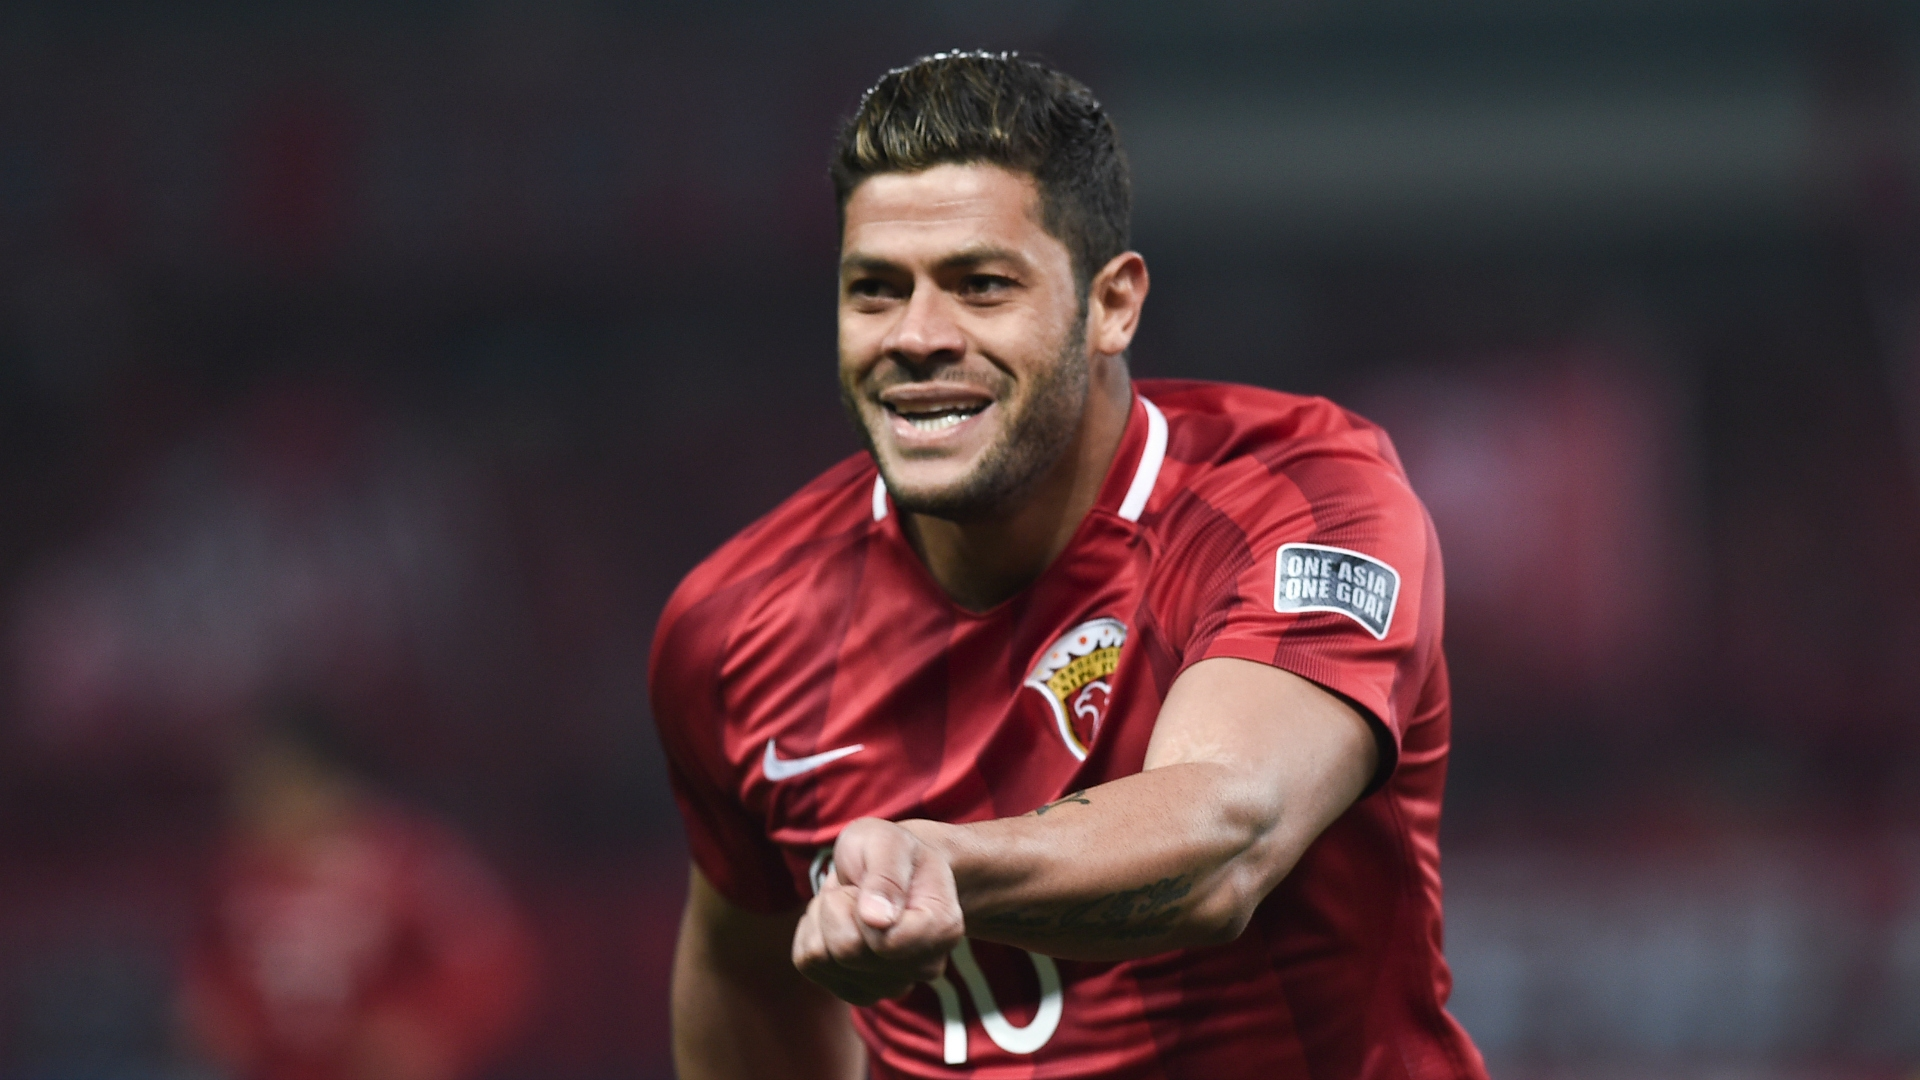 International star Hulk plays for the same team as Oscar. They are are both part of a number of high-profile players having joined the Chinese League in recent years.